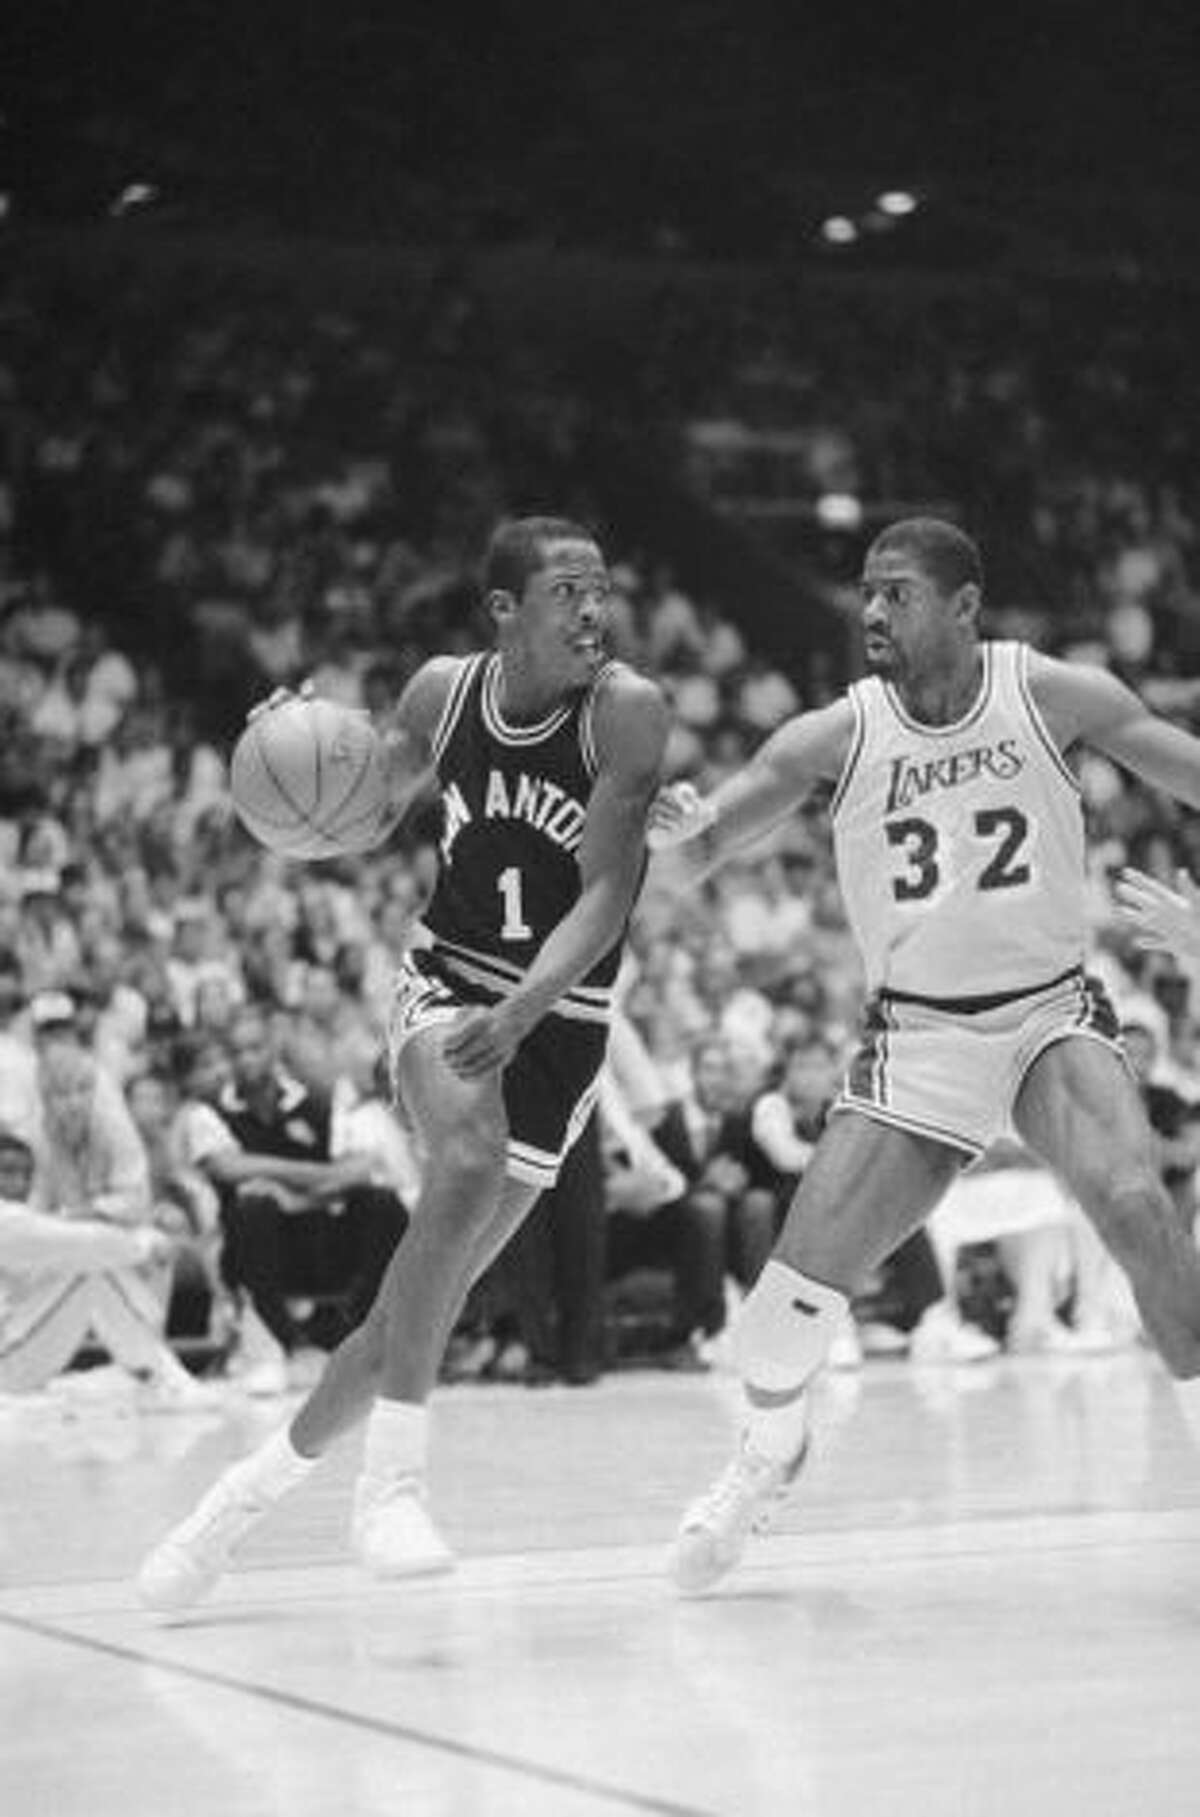 The greatest Presidents. Wes Matthews, left, playing against Magic Johnson. Matthews enjoyed a spectucular career at Harding High School before graduating in 1977. After playing at Wisconsin, Matthews was selected by the Washington Bullets with the 14th pick in the 1980 NBA draft. He played nine seasons in the NBA, scoring more than 3,000 points. He earned two NBA championship rings with the LA Lakers and his son, Wesley, currently plays for the Porland Trailblazers.